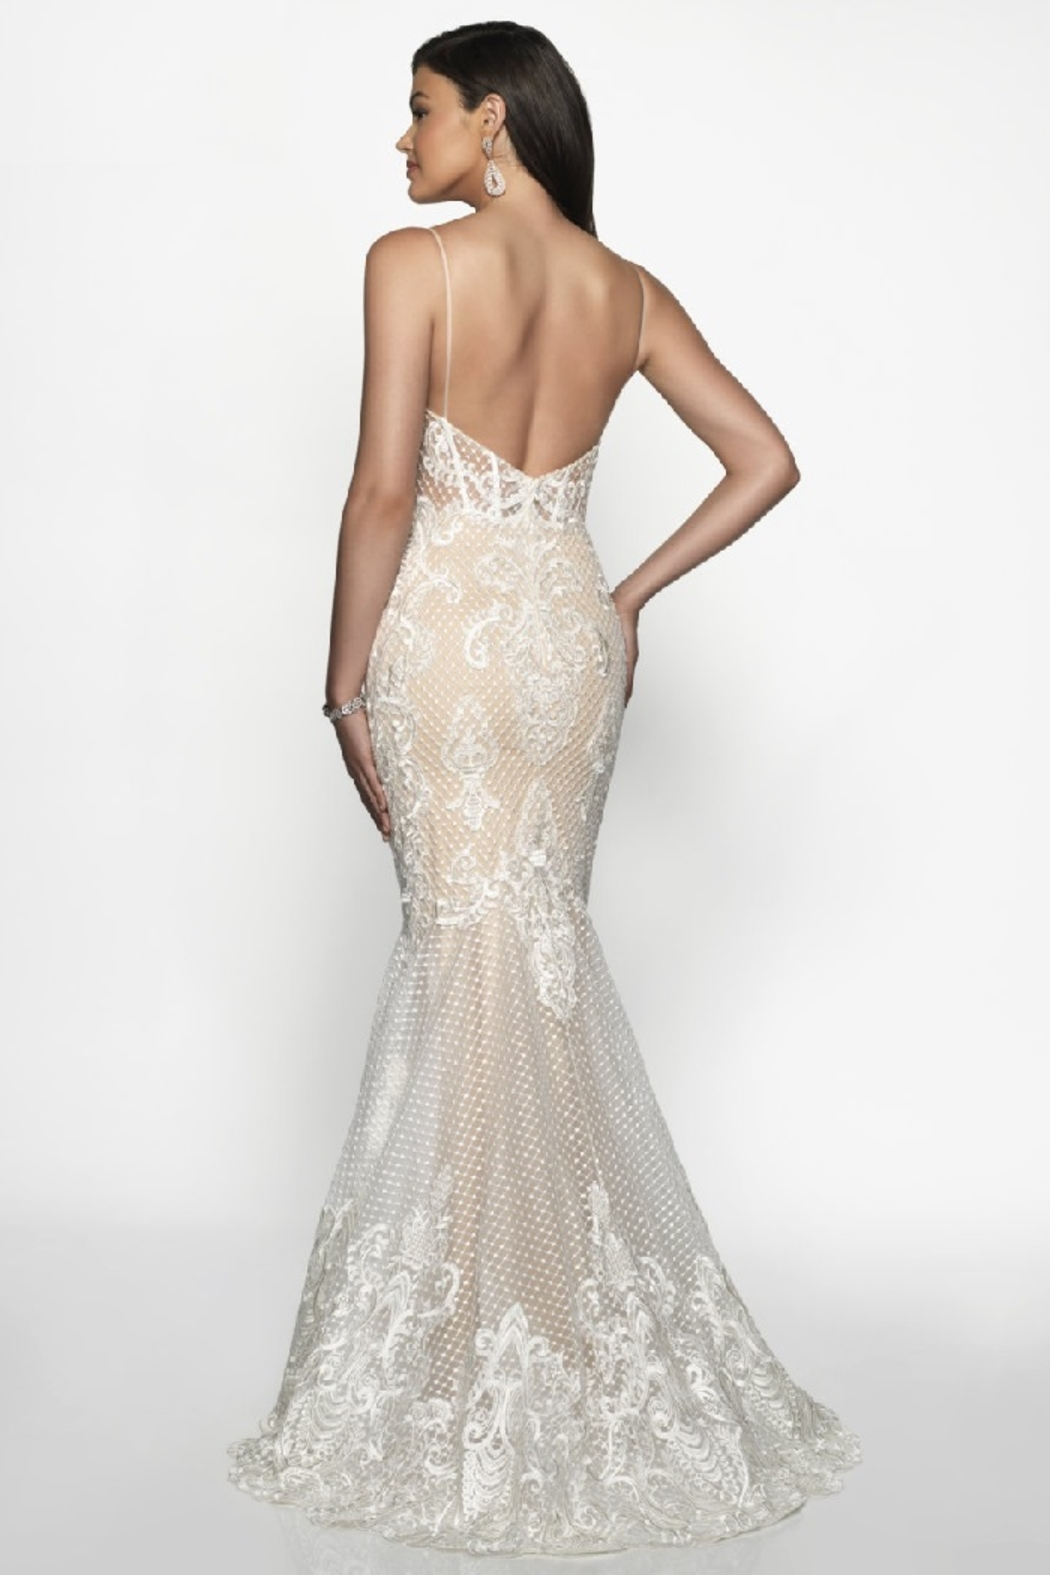 Flair New York Off White & Nude Lace Mermaid Bridal Gown - Front Full Image